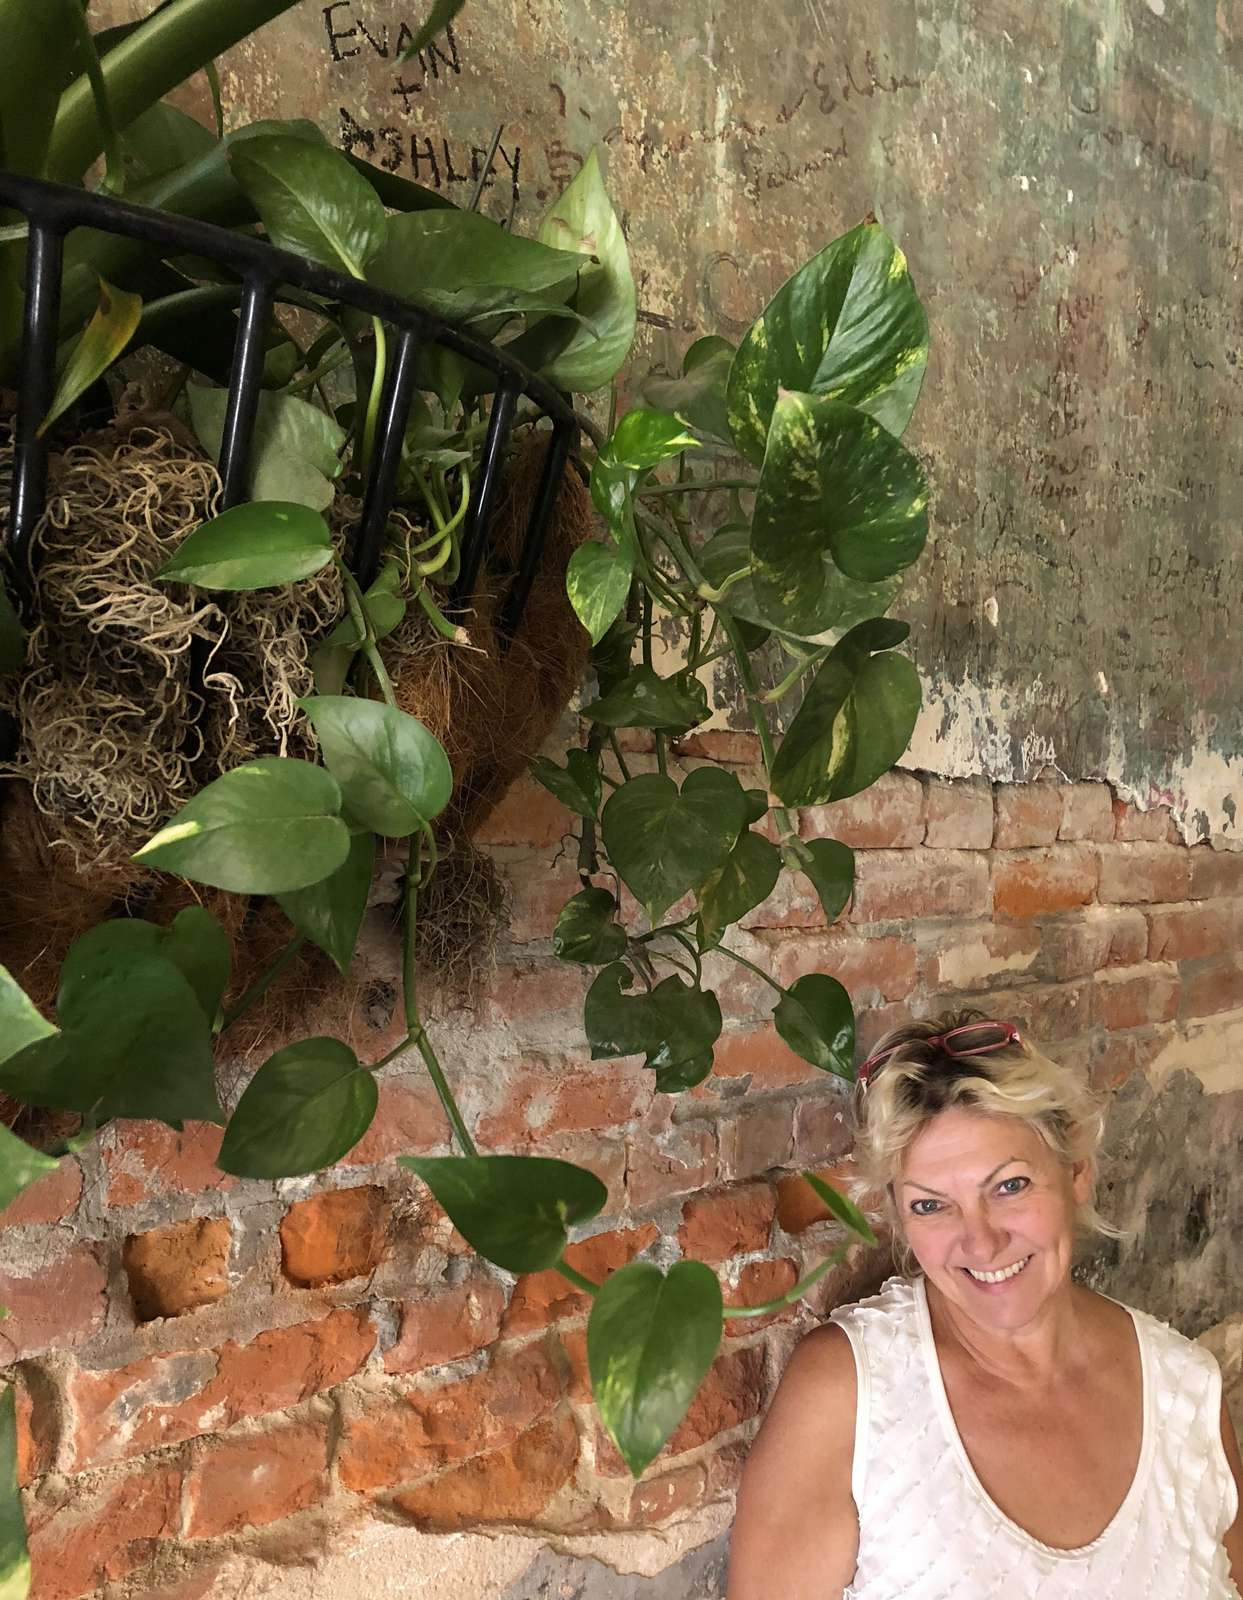 Genese hatcher,  owner